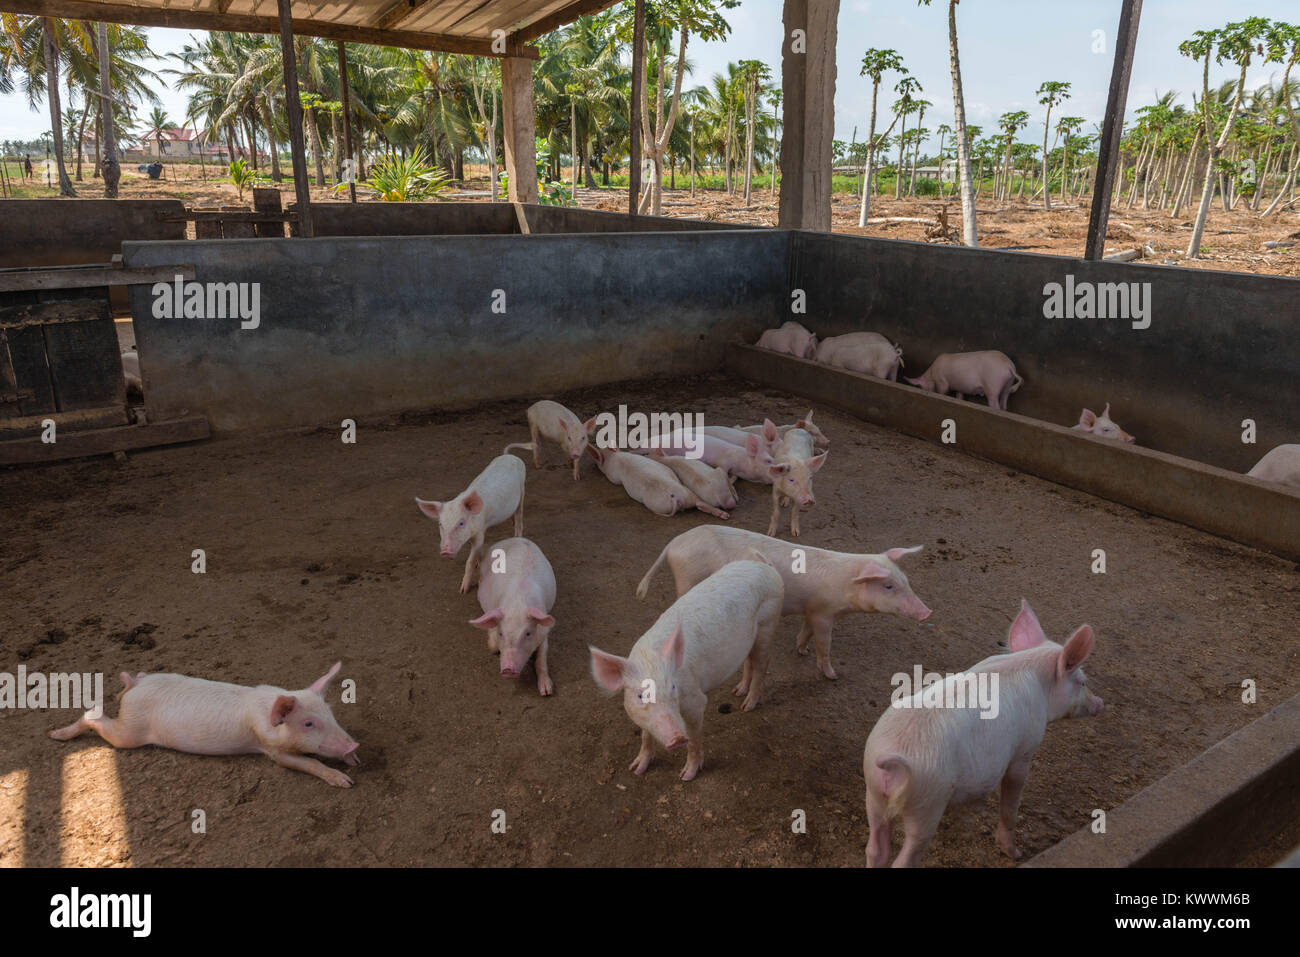 Pigstall on a farm  among coconut palm trees, Anloga, Volta Region, Ghana, Africa - Stock Image